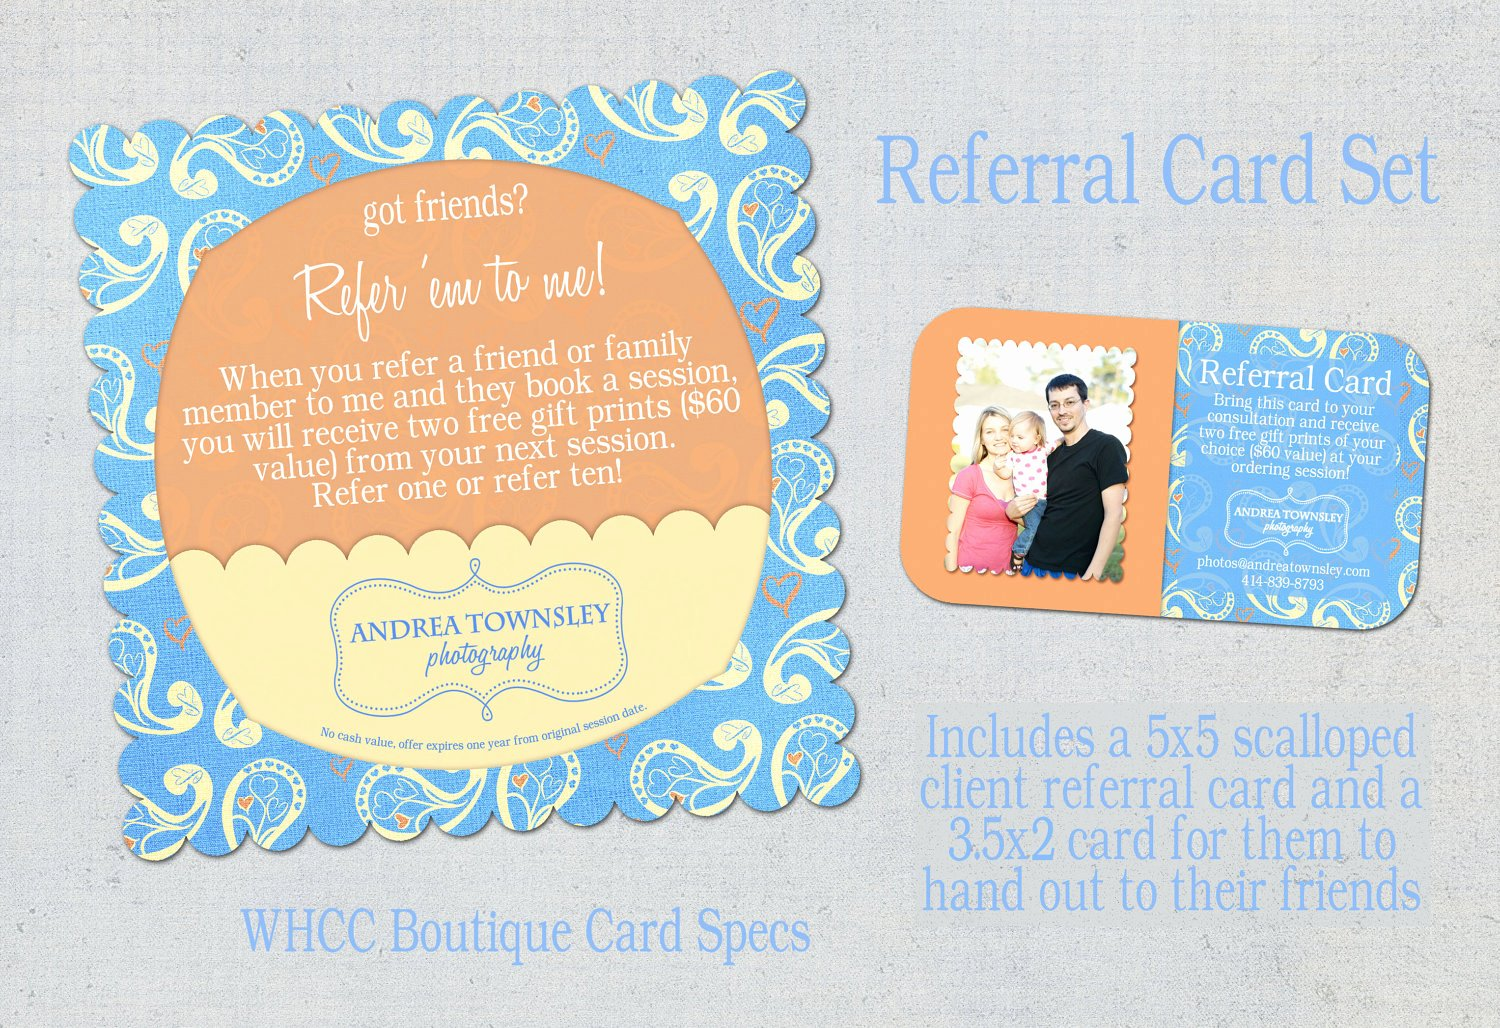 Referral Card Template Free Best Of Items Similar to Referral Card Set Template Blue and